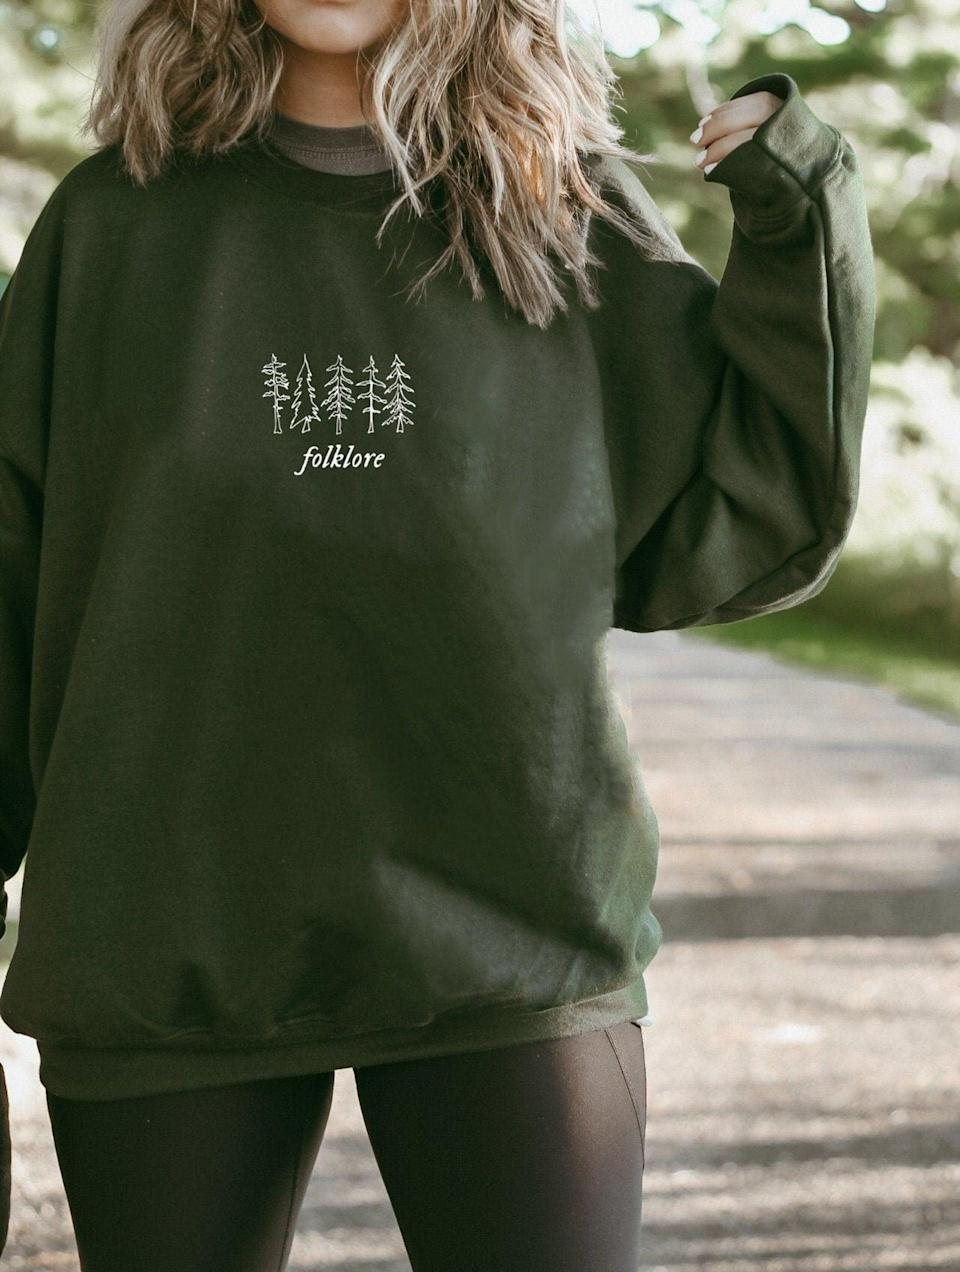 <p>Get them something cozy and cuddle-worthy like this <span><b>Folklore</b> Crew Neck Sweatshirt</span> ($35, and up). It's perfect for the ones who resonate with <b>Folklore</b> and such a fall/winter vibe. It comes in dark grey as well!</p>